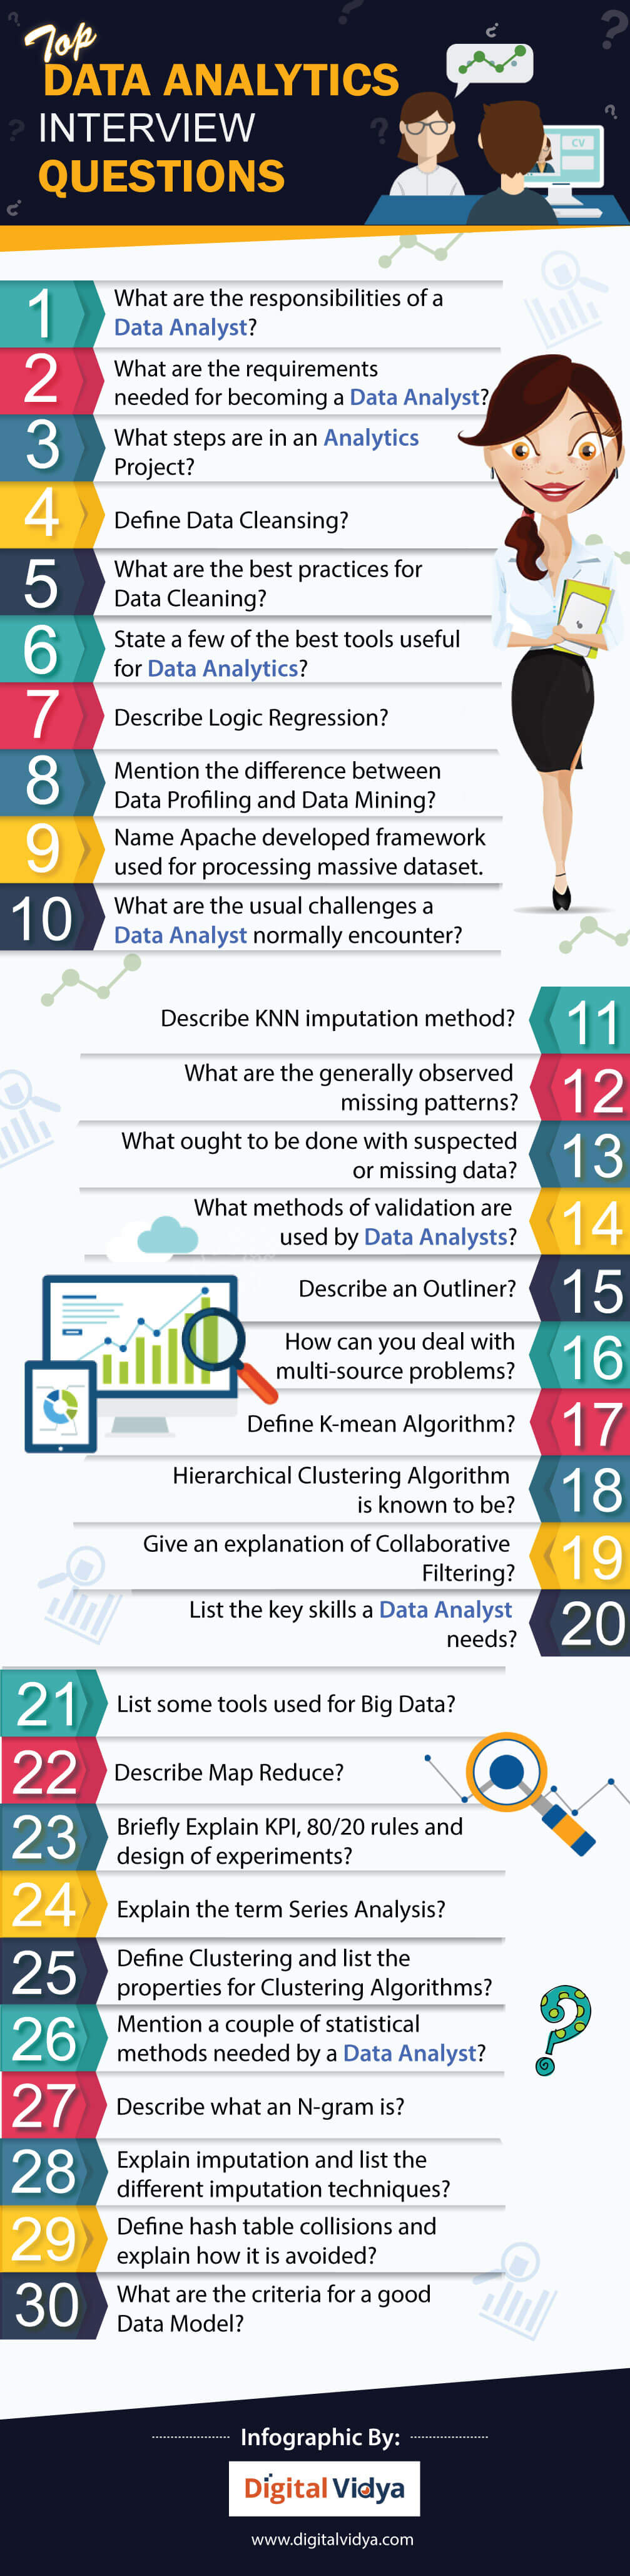 Top Data Analytics Interview Questions_Infographic